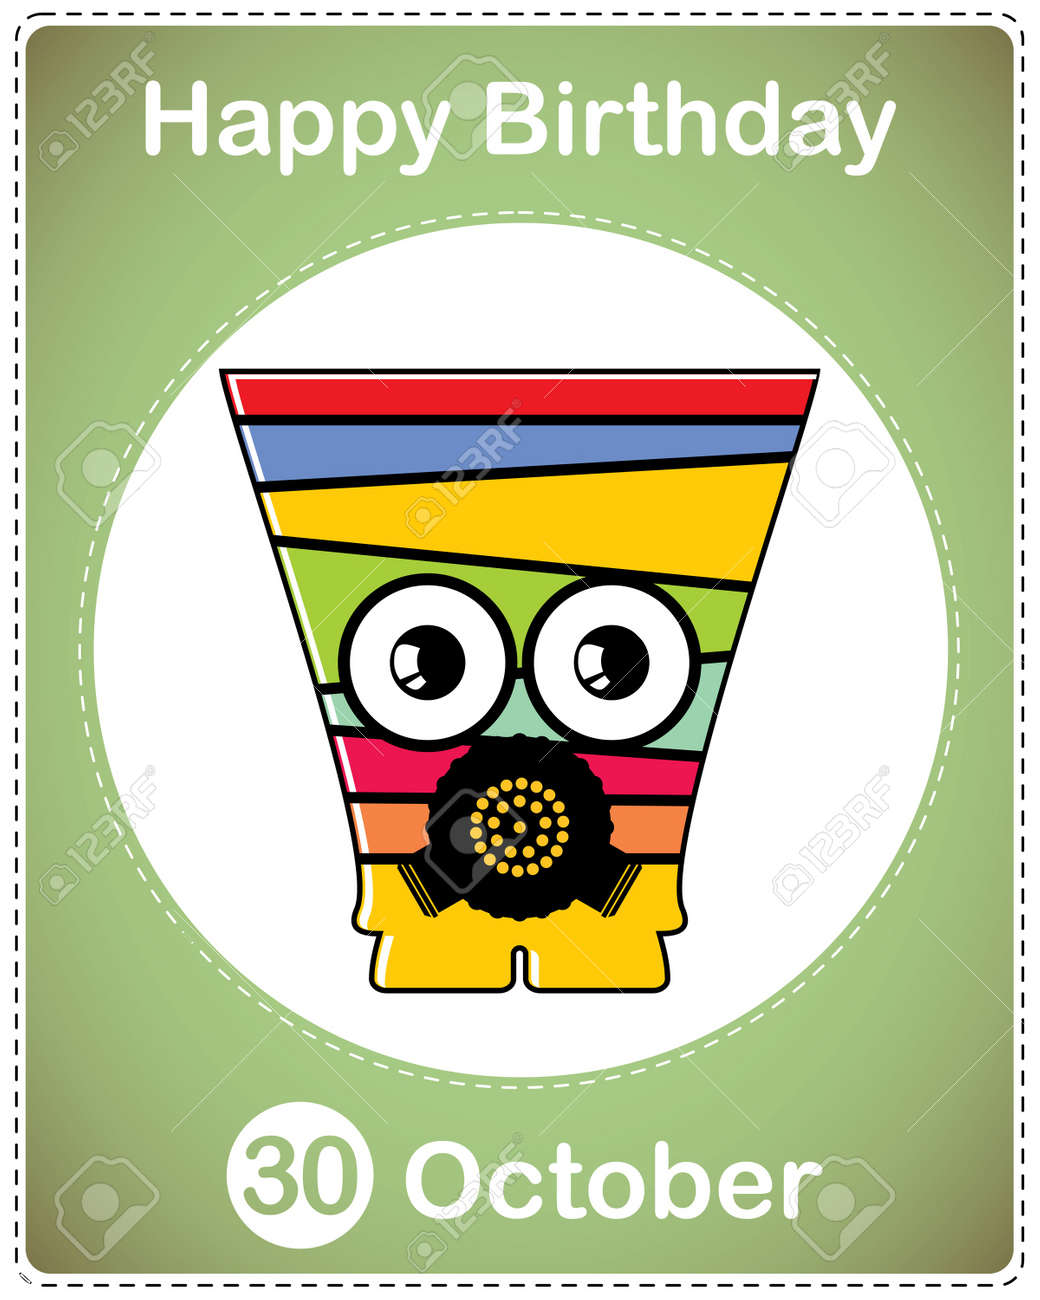 Happy birthday card with cute cartoon monster Stock Vector - 17978202